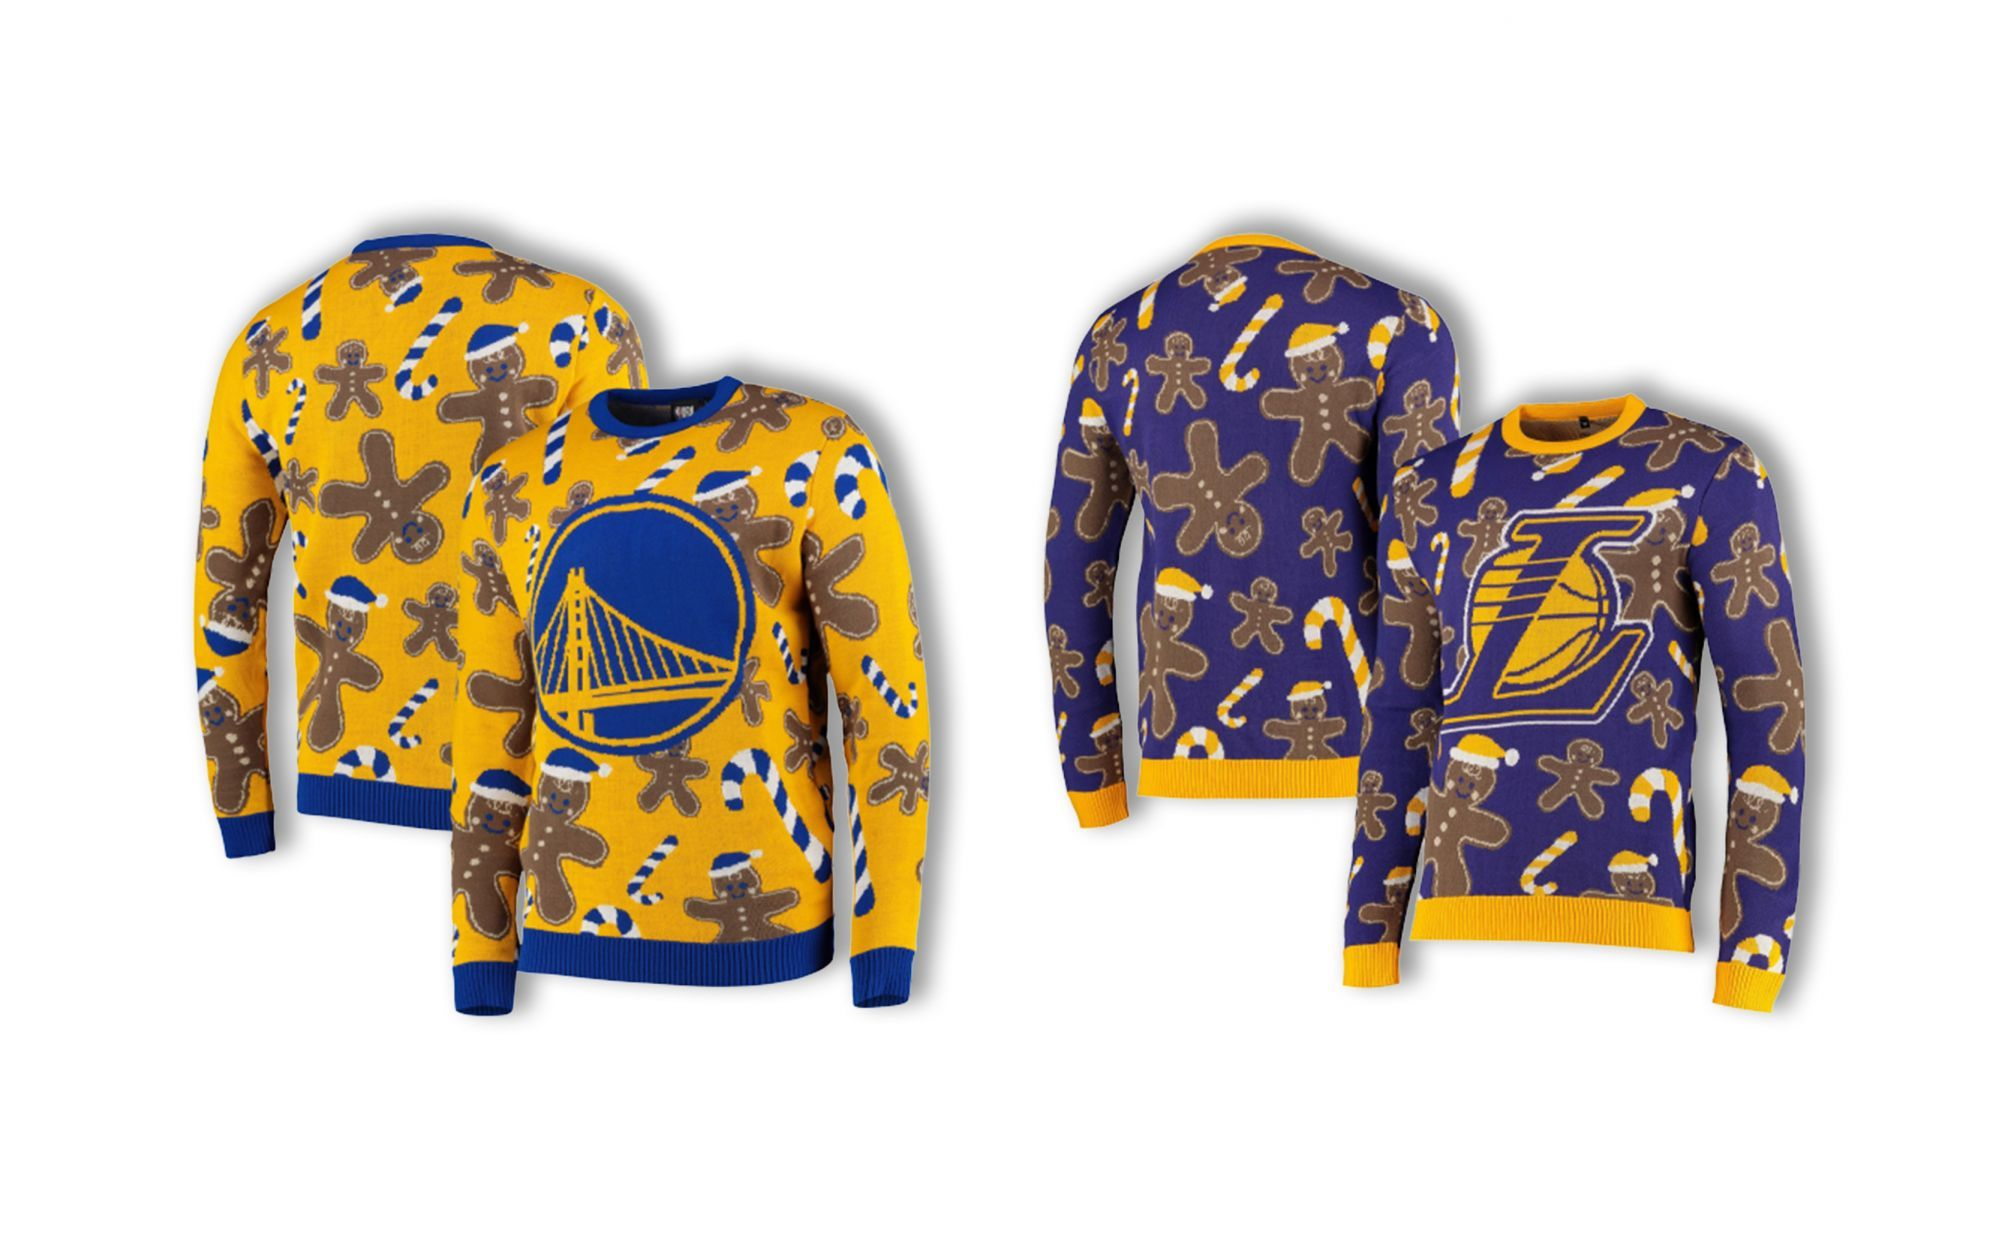 Nba Ha Messo In Vendita I Christmas Jumpers 2019